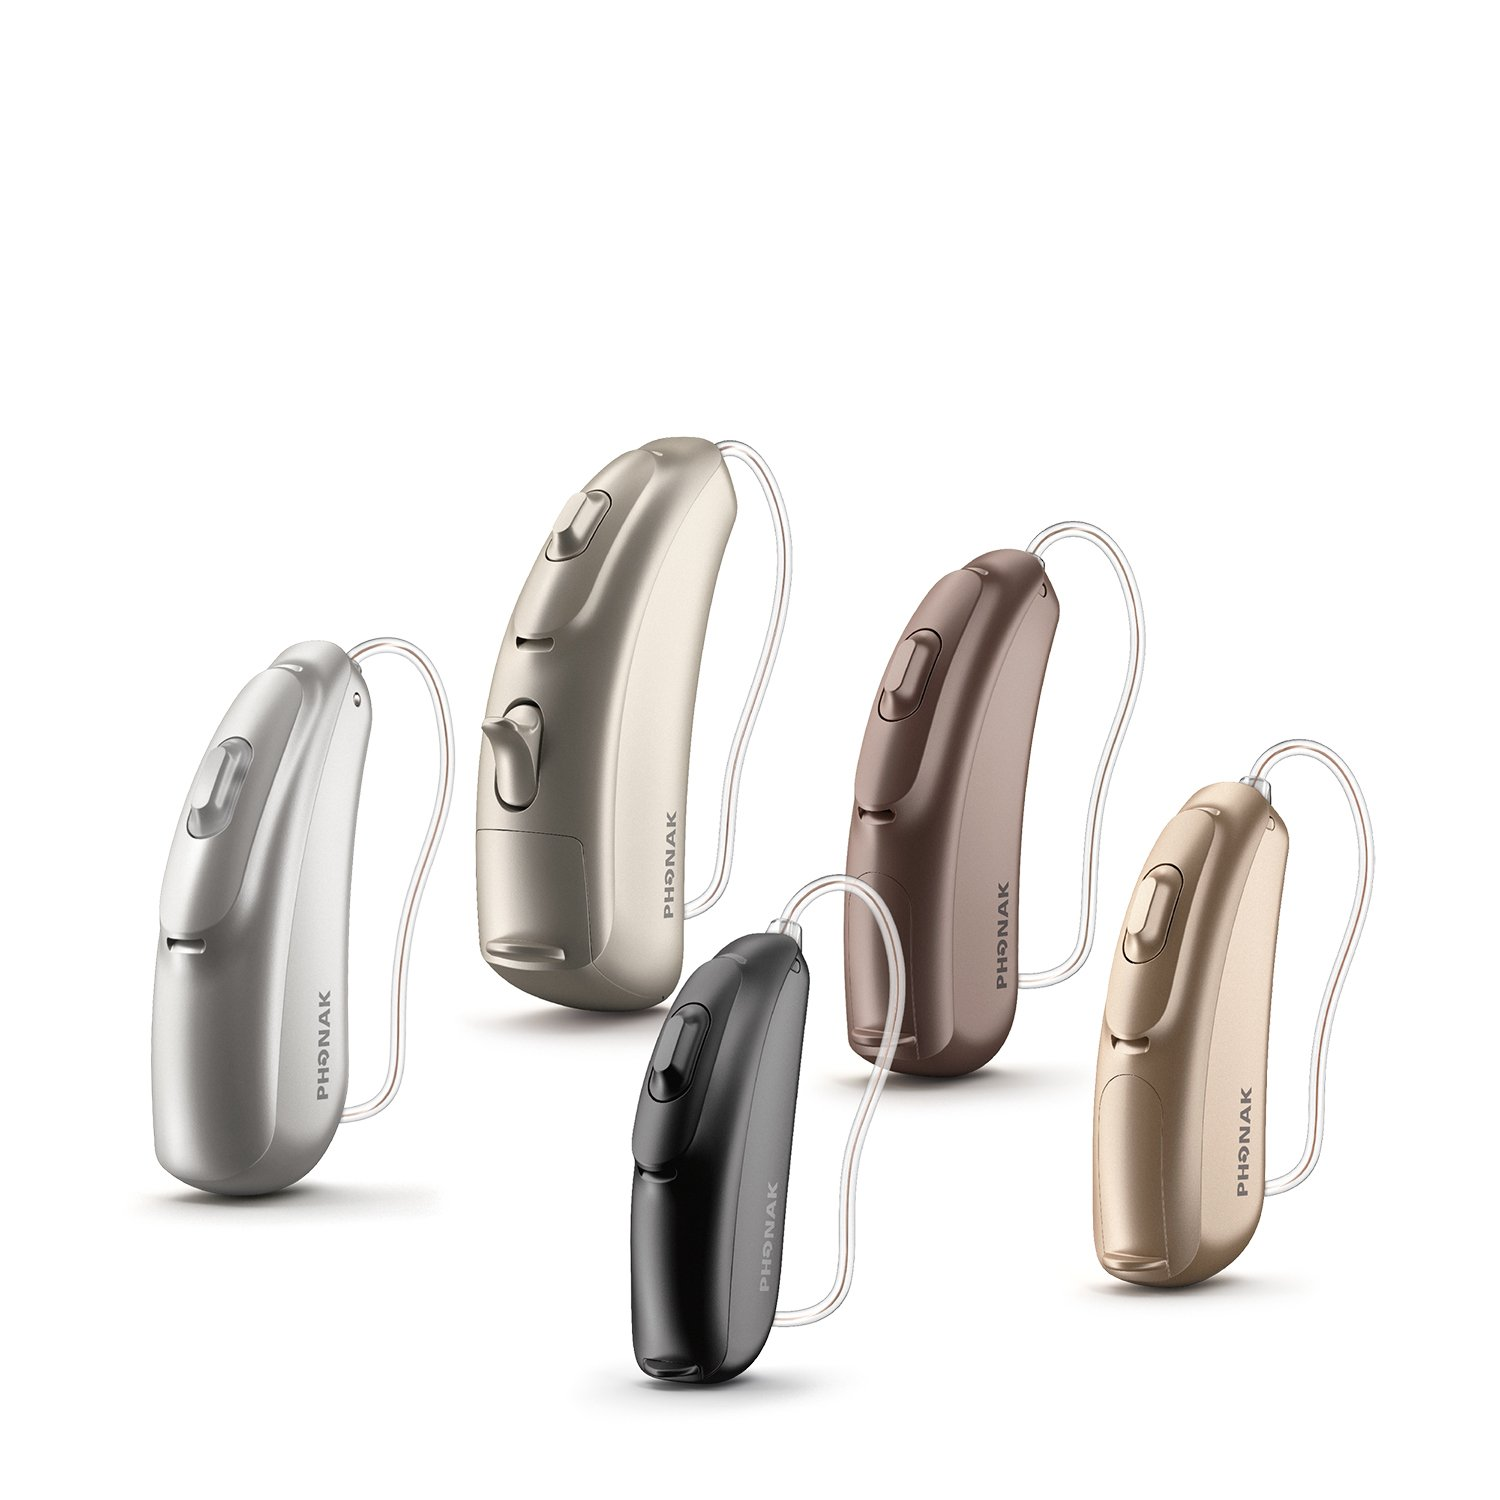 Phonak Audeo B Hearing Aid